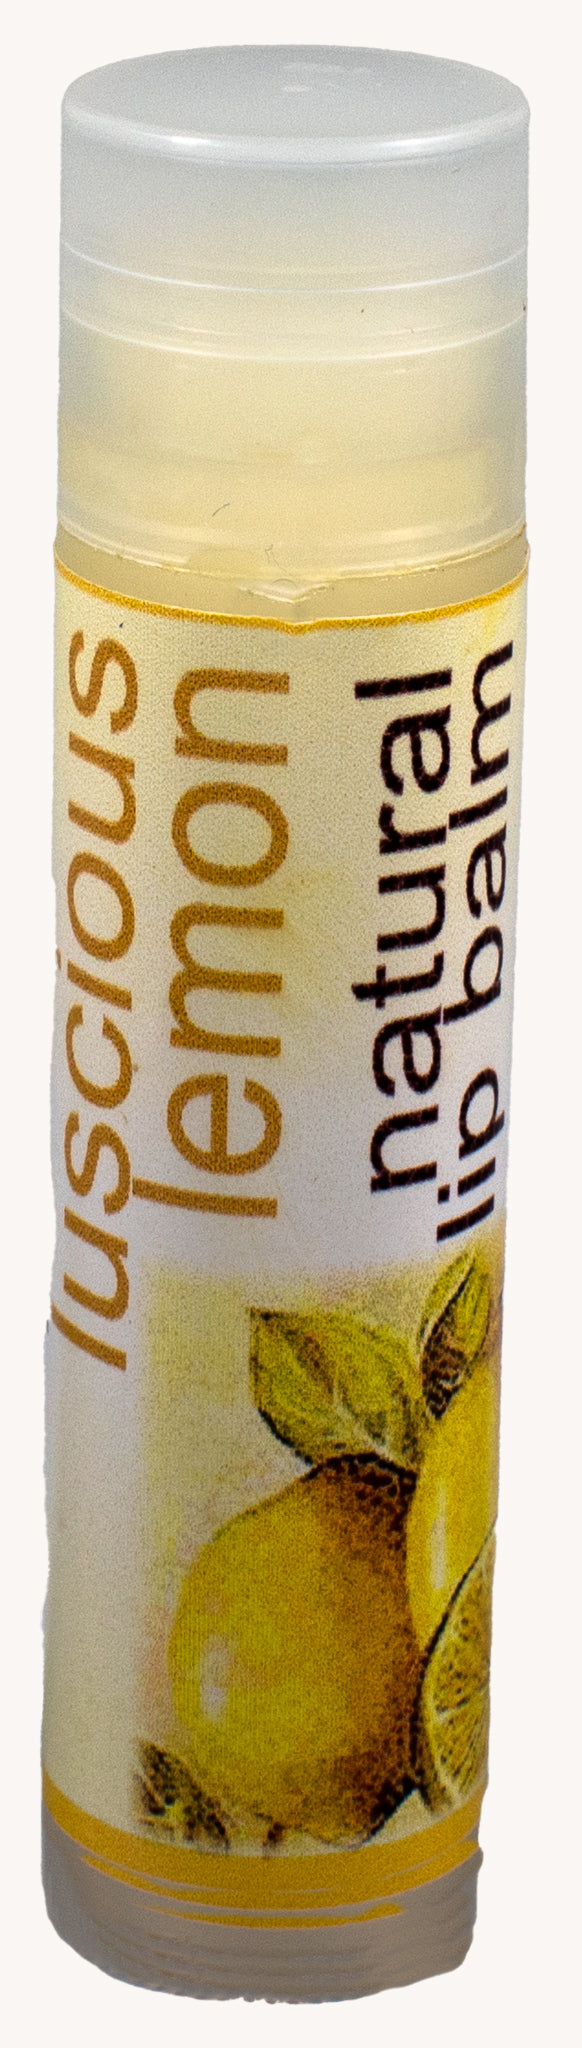 Bath and Body - Natural lemon lip balm